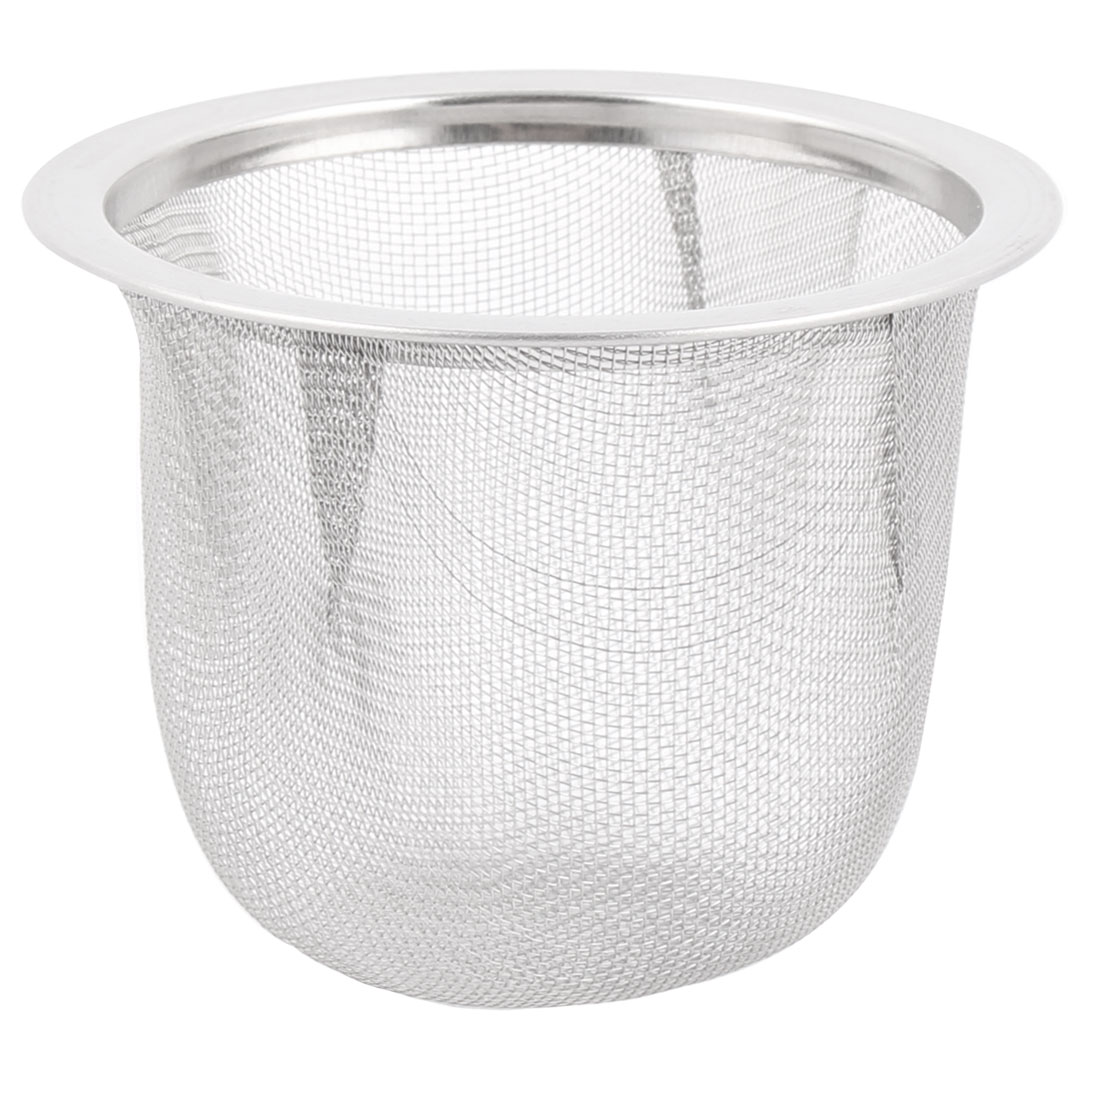 Tea Leaf Spice Round Wire Mesh Teapot Filter Strainer 63mm Dia 50mm Depth